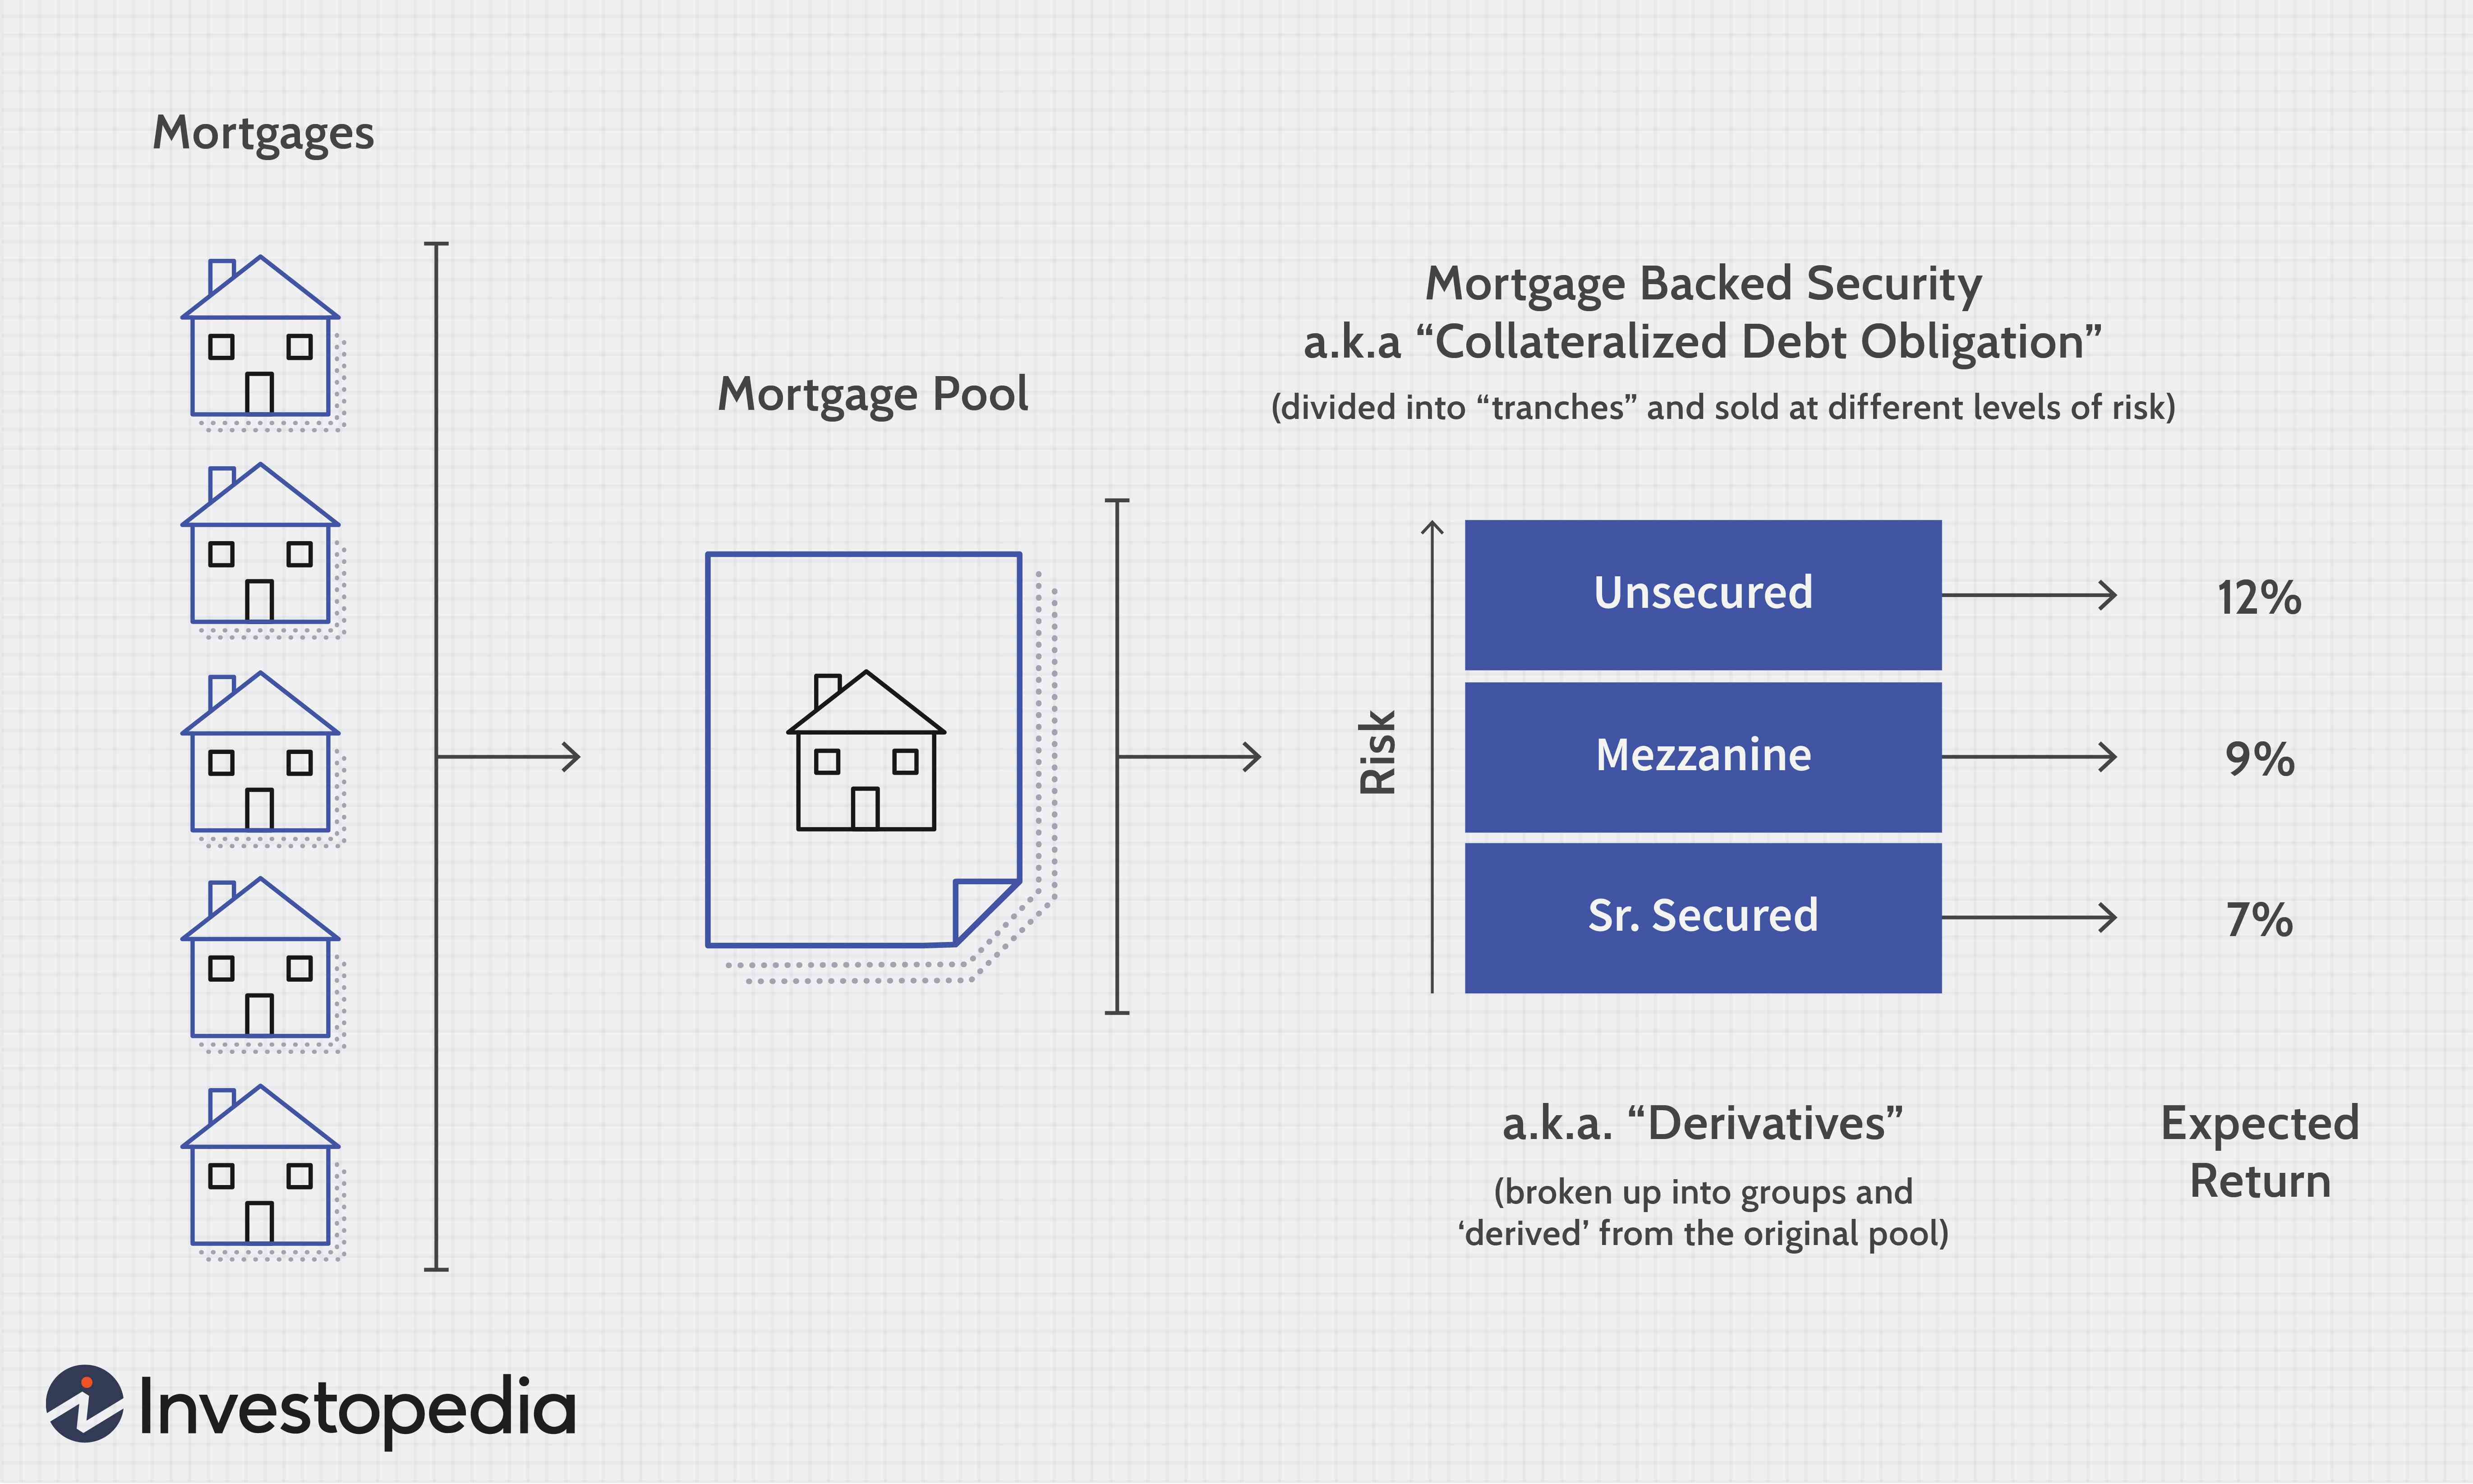 Why Do Mbs Mortgage Backed Securities Still Exist If They Created So Much Trouble In 2008